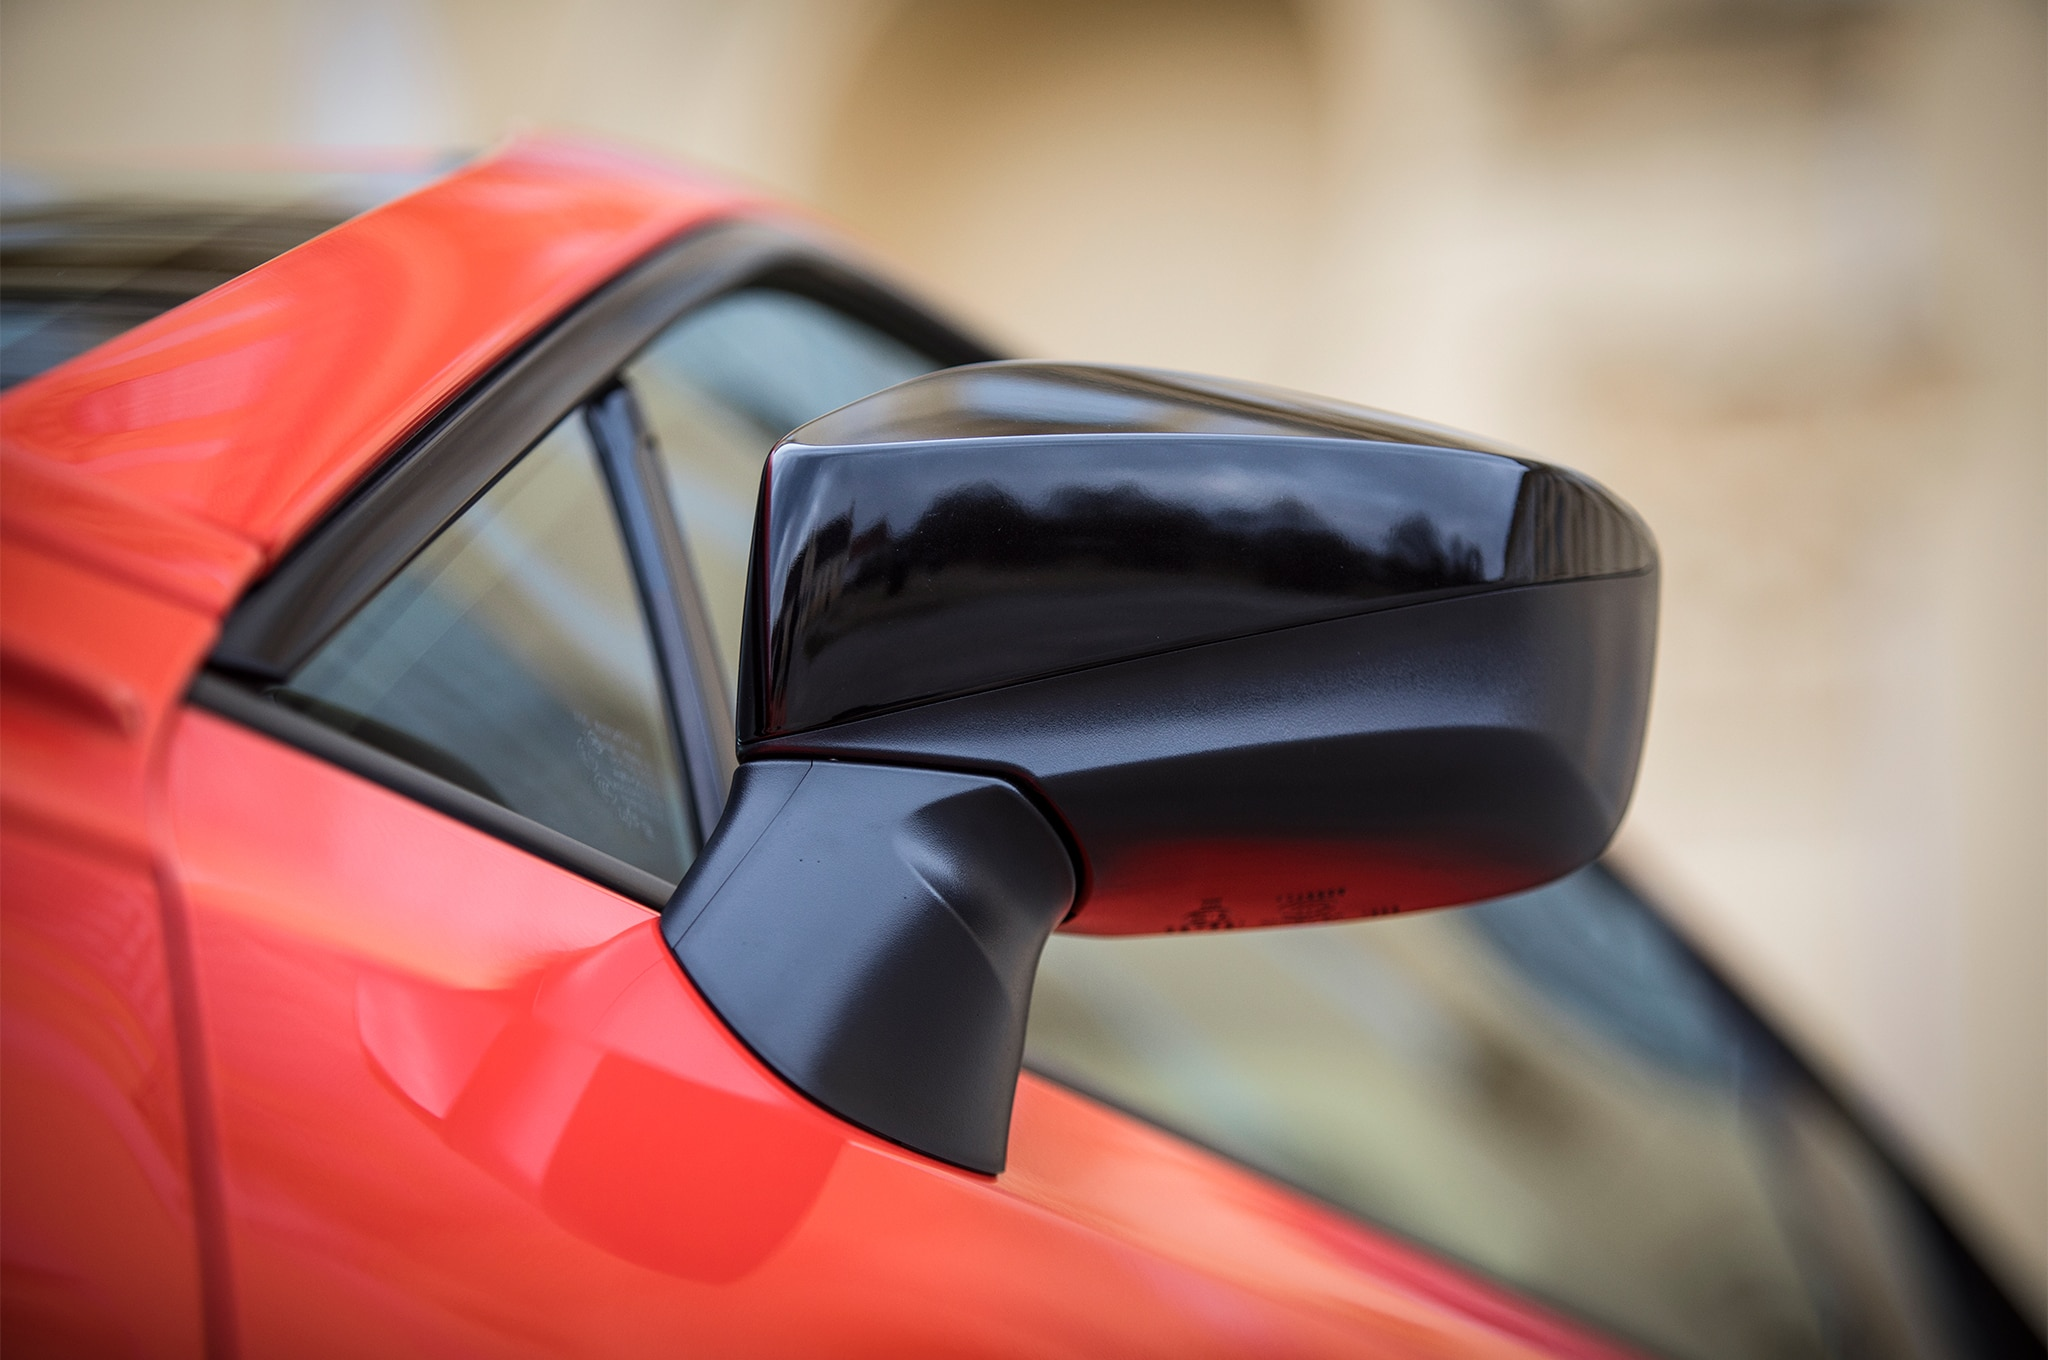 2017 Toyota 86 860 Special Edition side mirror